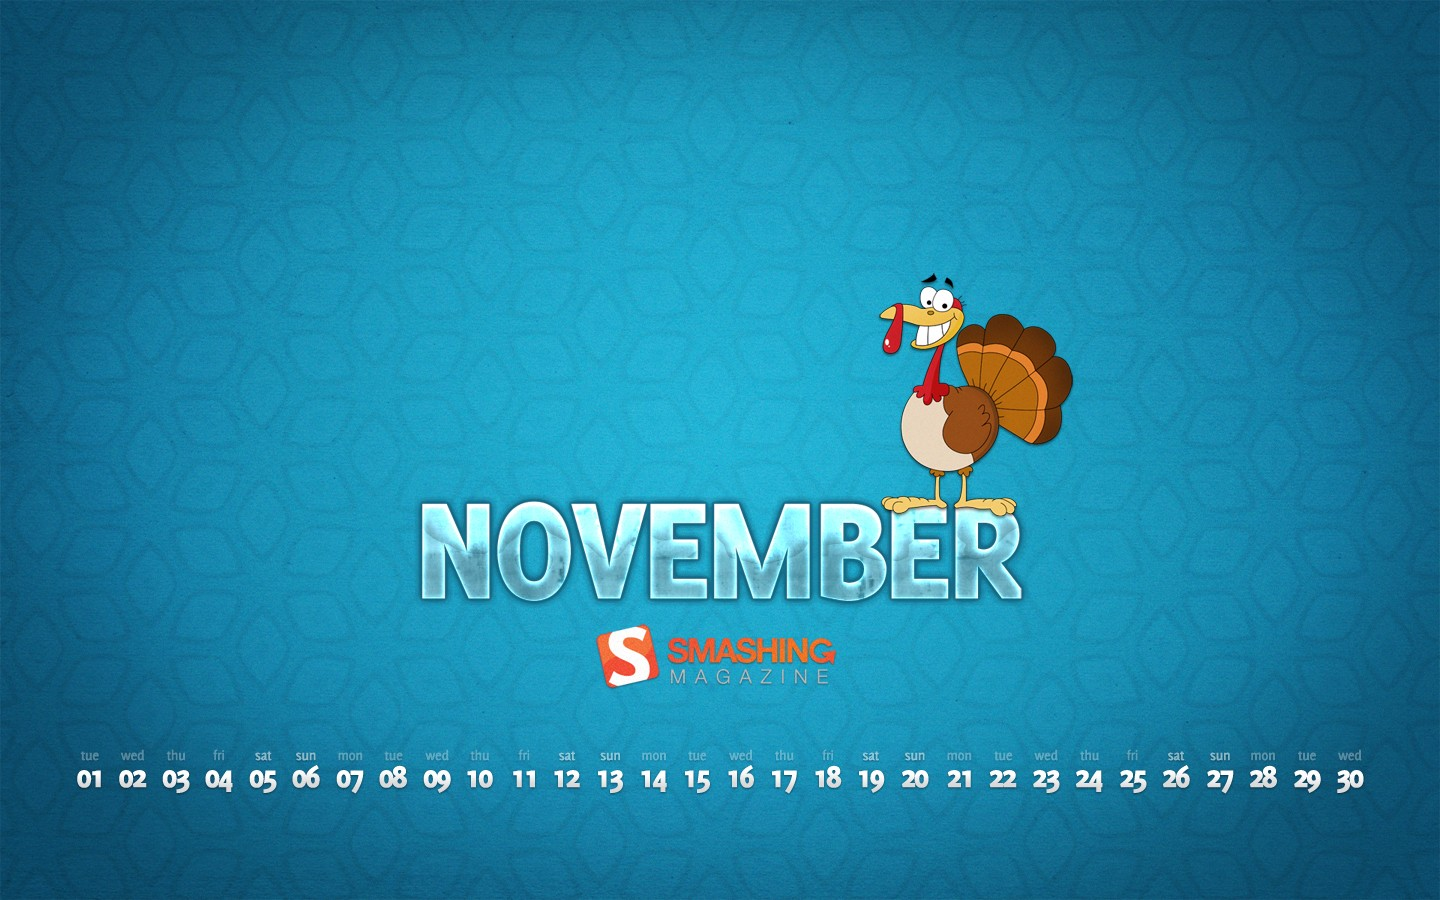 In January Calendar Wallpaper 30997